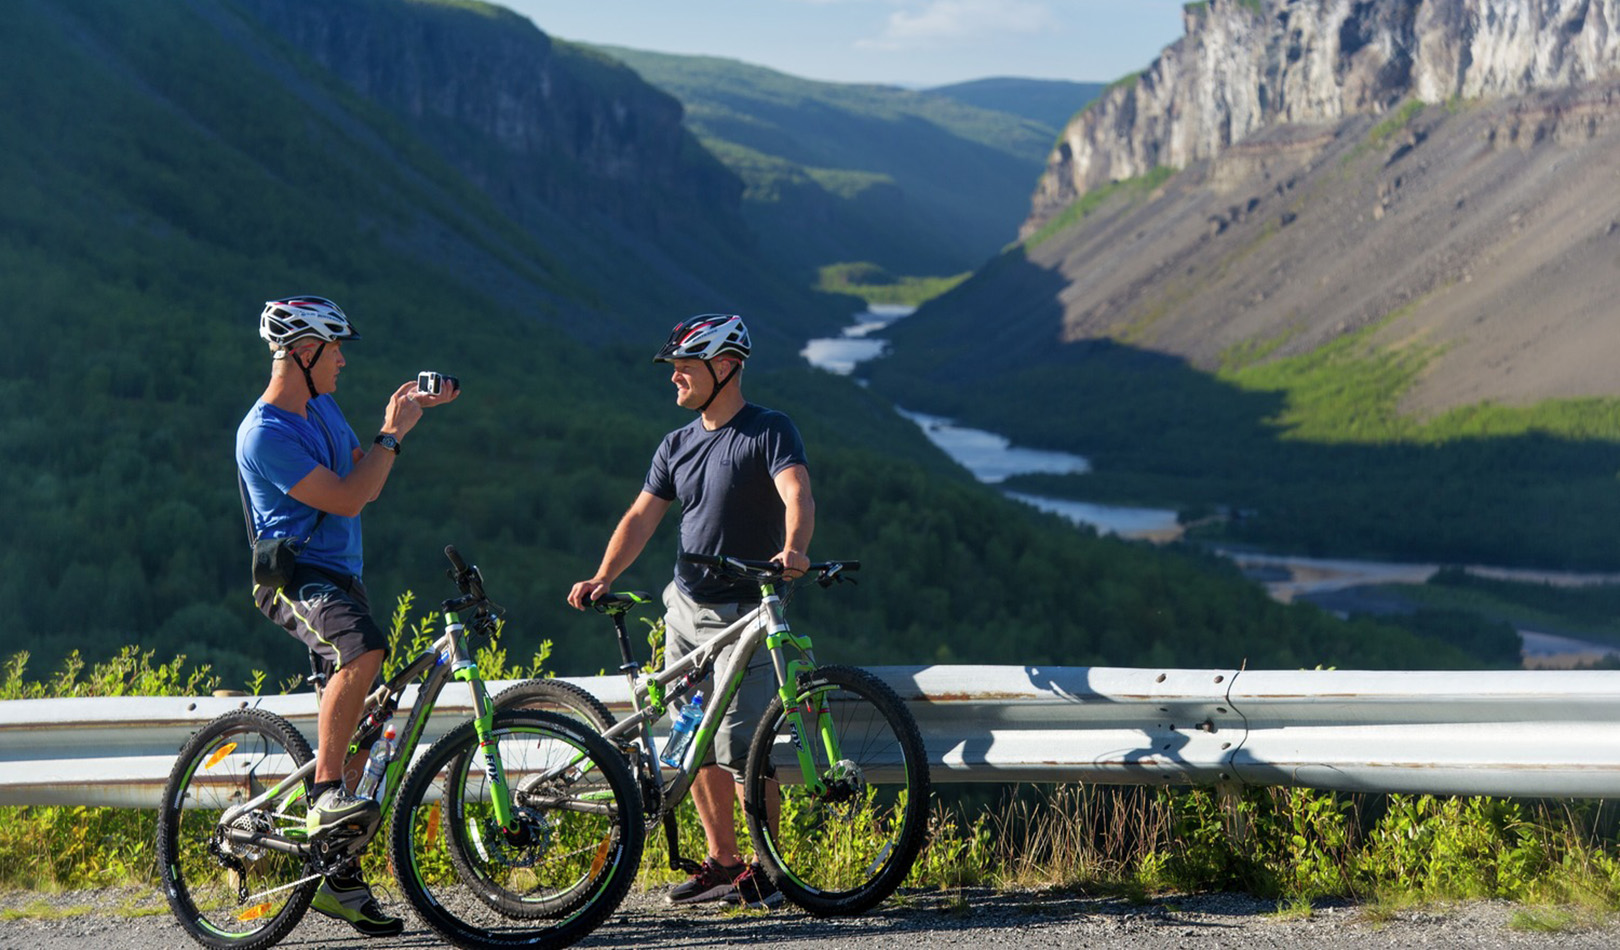 Two cyclists taking a break and filming each other i Finnmark.